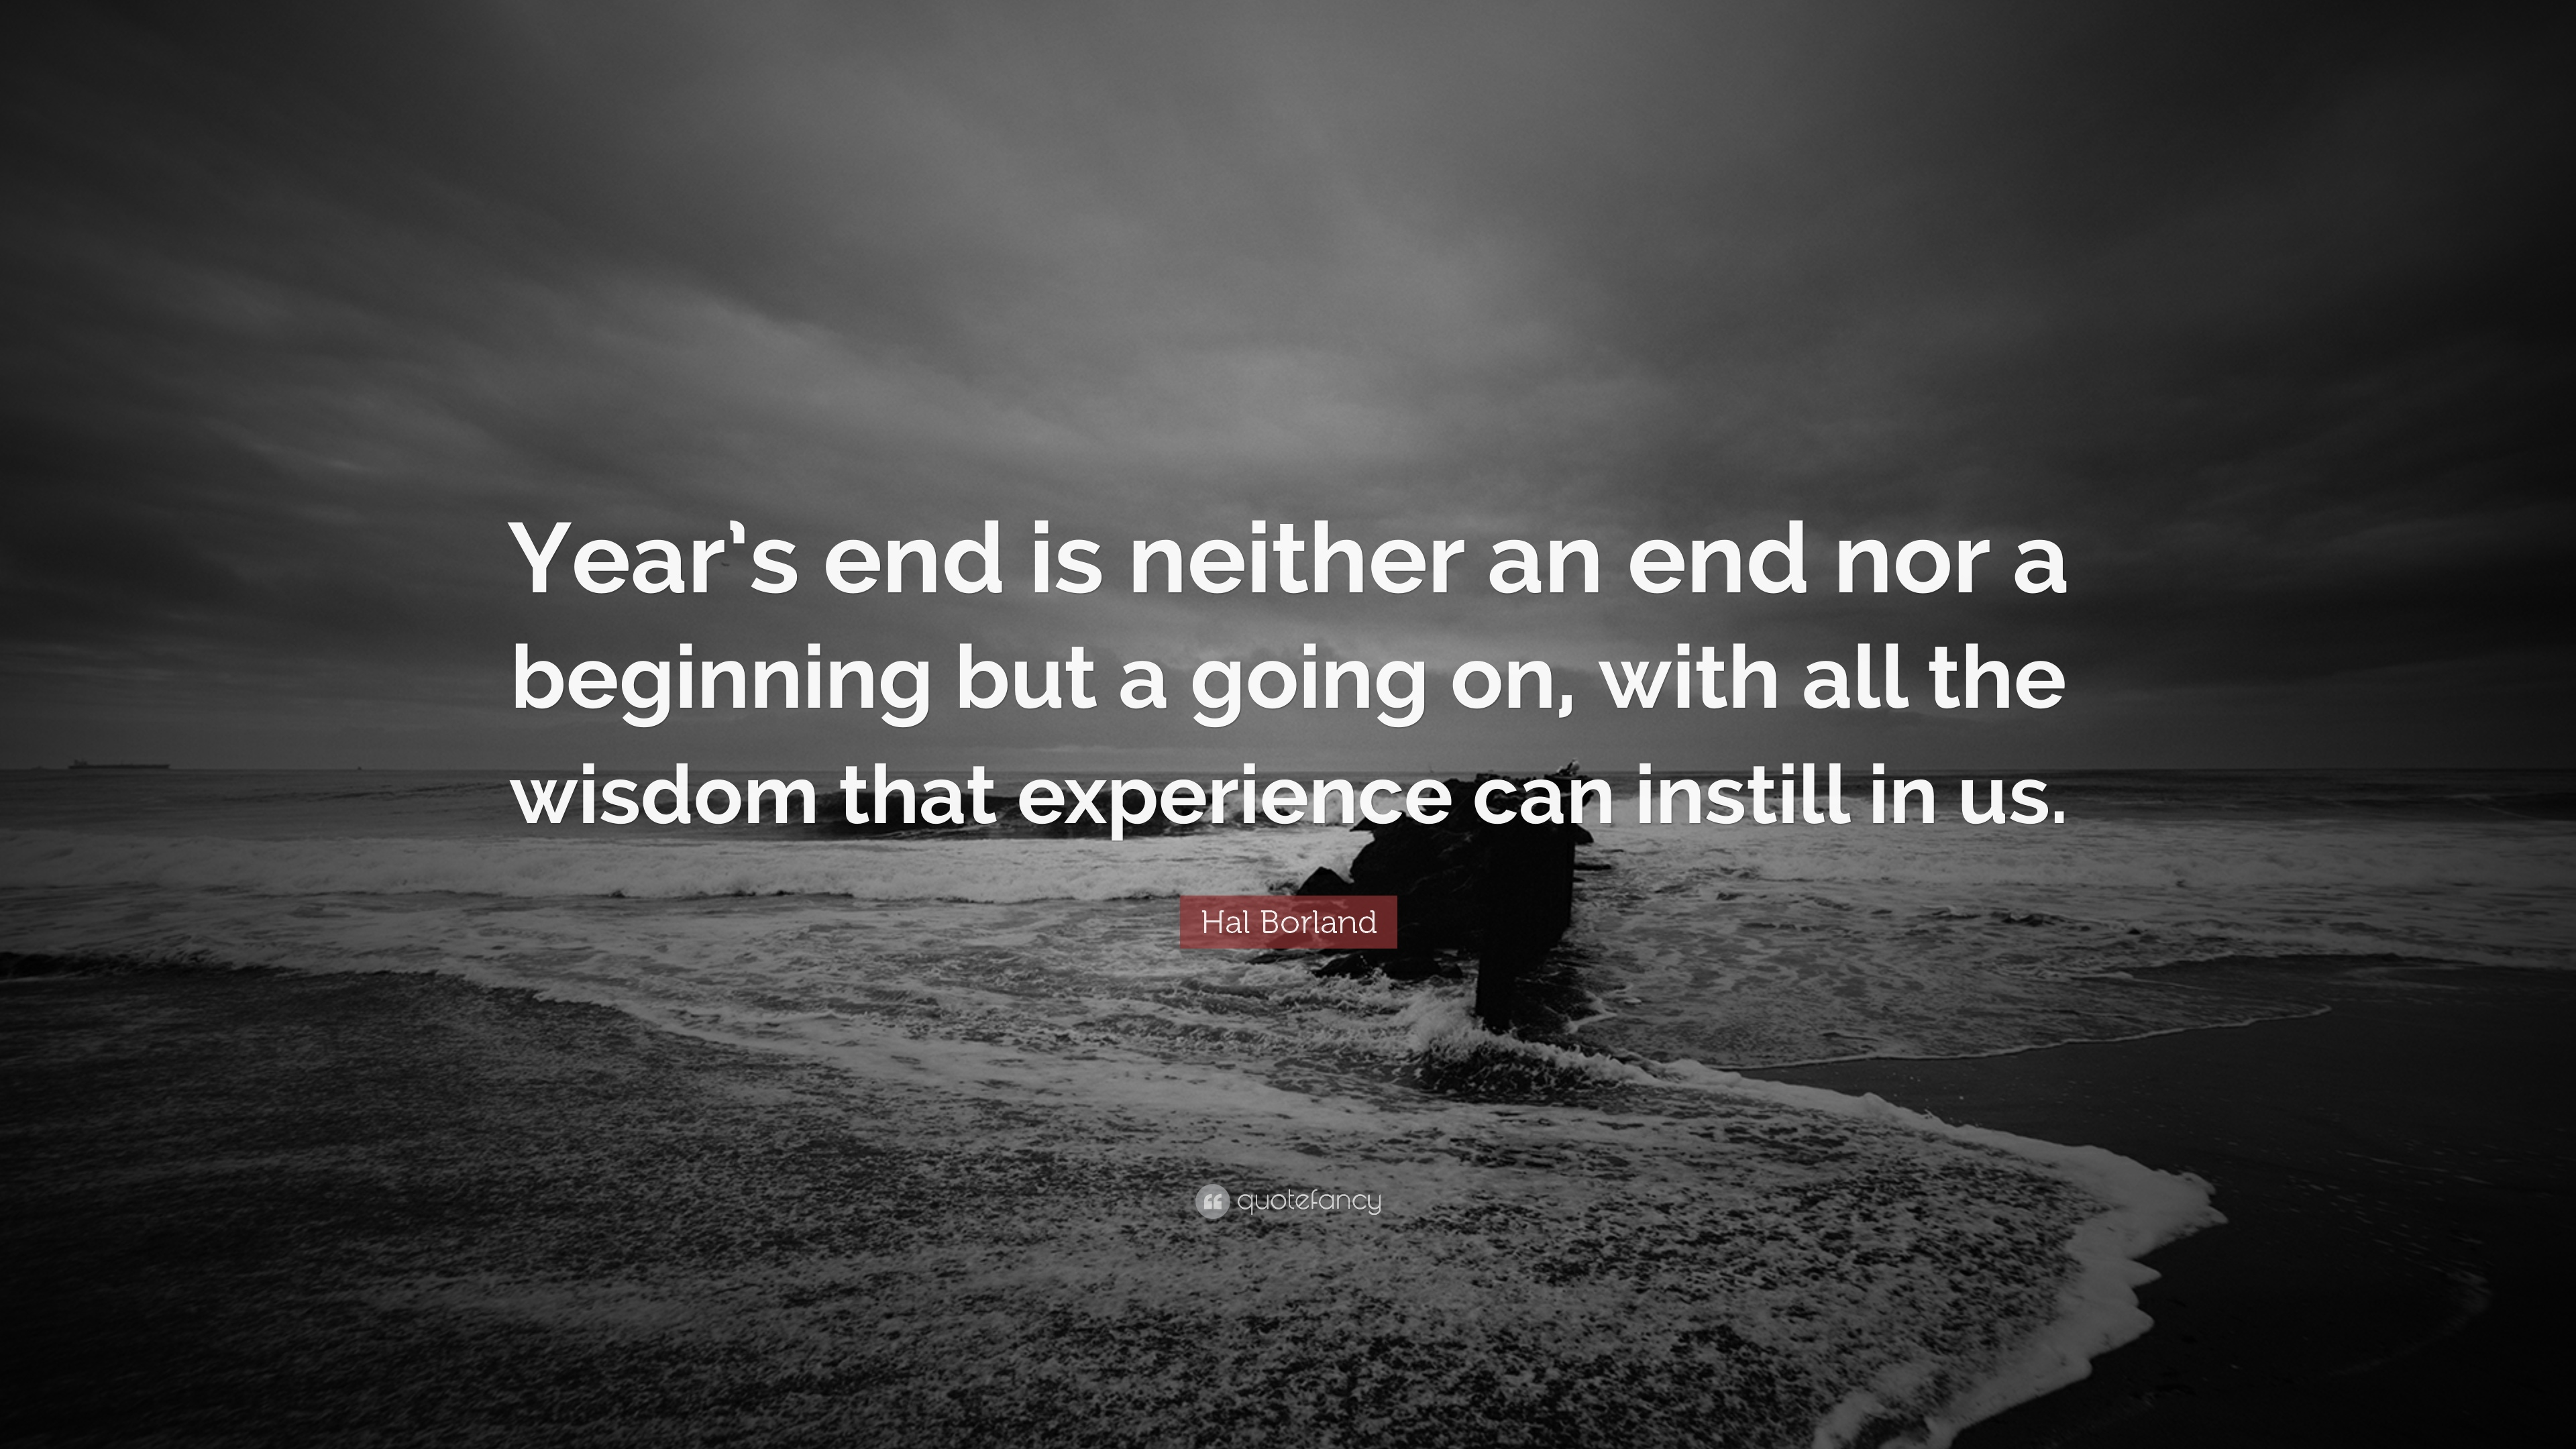 hal borland quote years end is neither an end nor a beginning but a